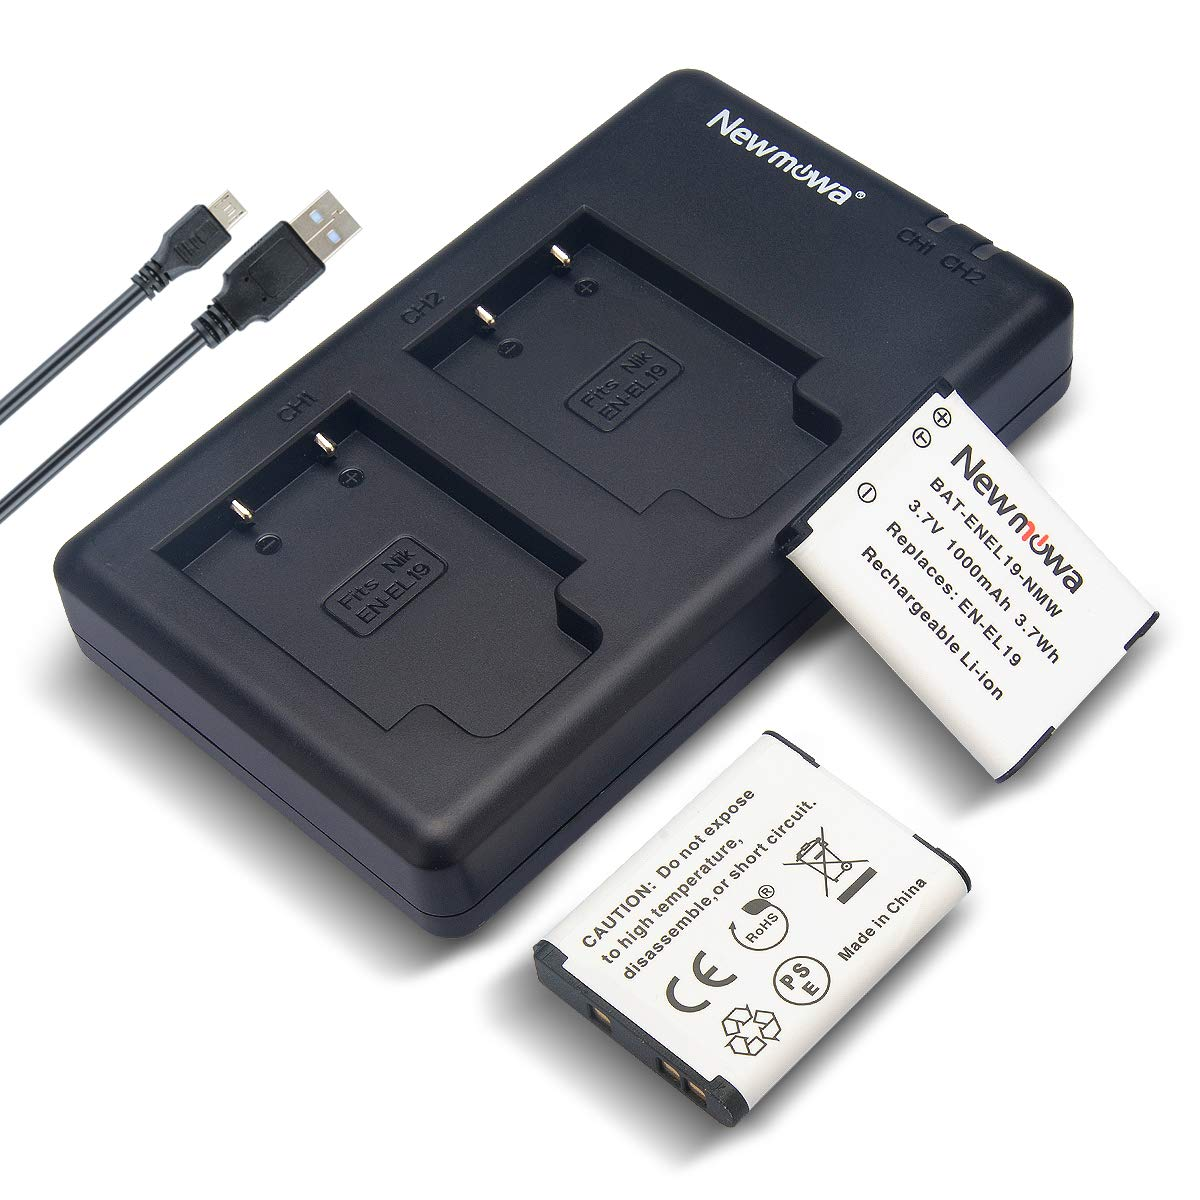 ANTOP Antenna Newmowa EN-EL19 Battery(2-Pack) and Dual USB Charger kit for Nikon Coolpix S32, S33,S100, S2800, S3100, S3200, S3300, S3500, S3600, S3700, S4100, S4200, S4300, S5200, S5300 by ANTOP Antenna